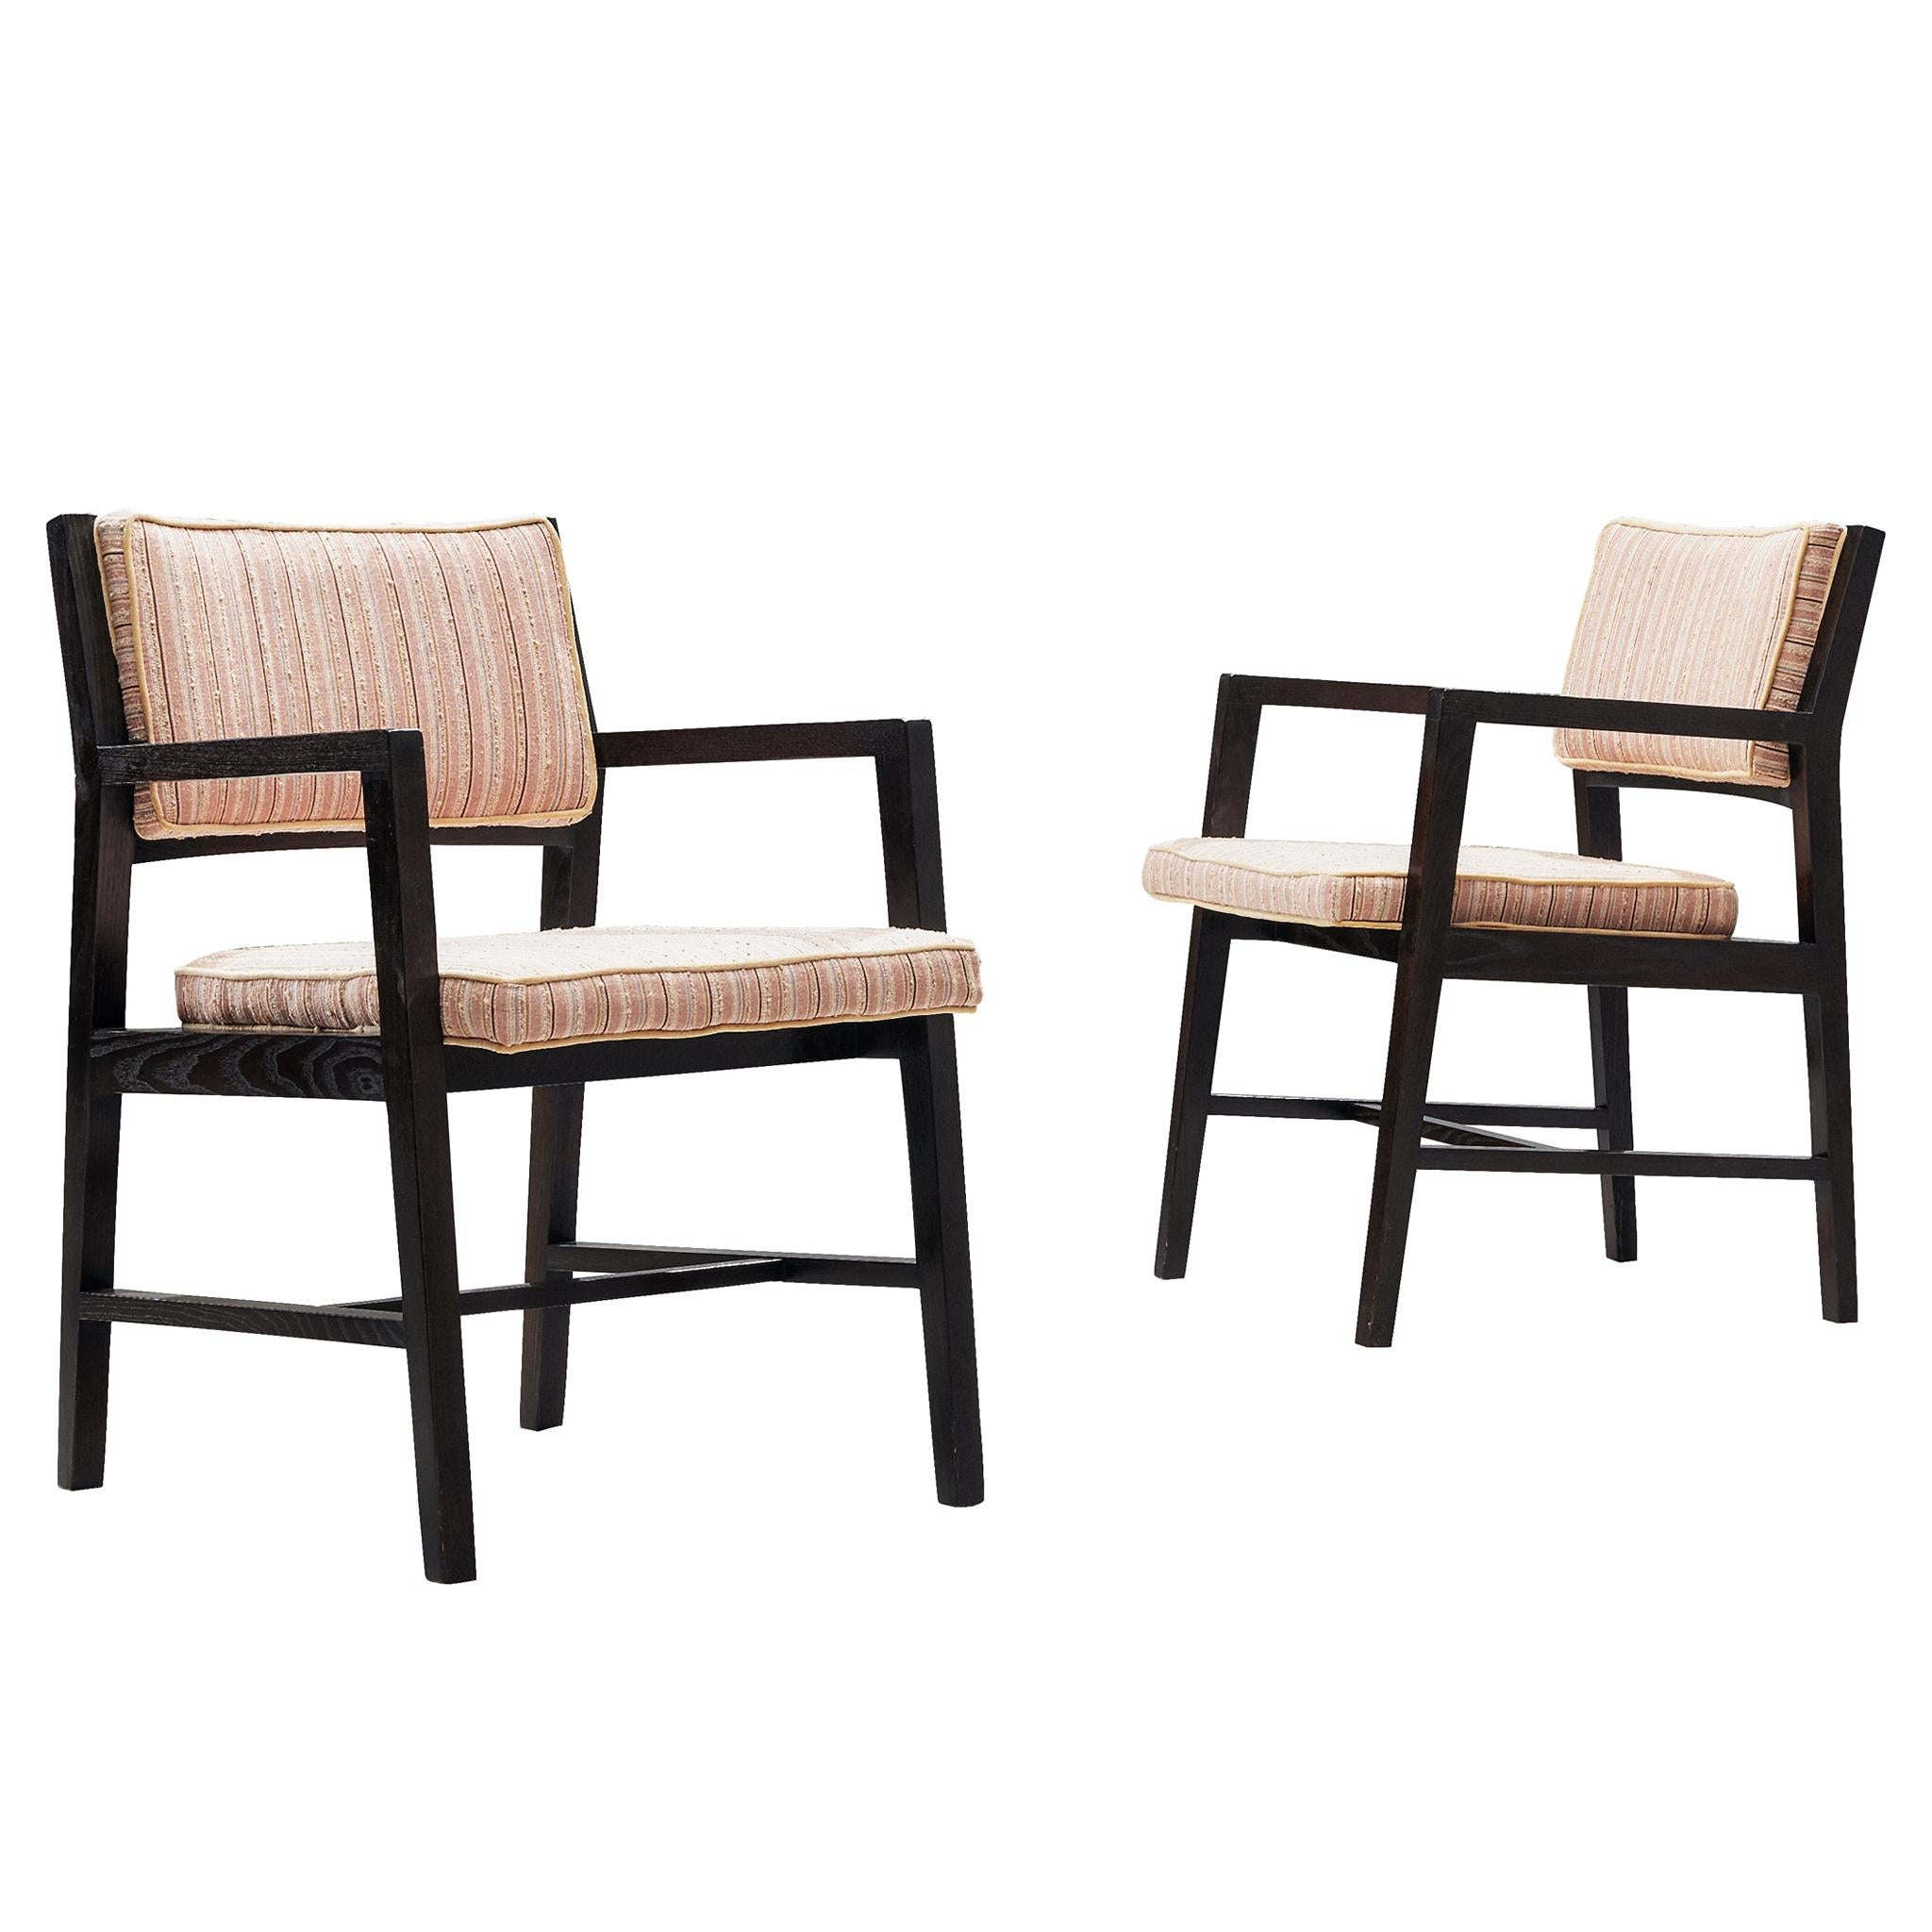 Pair of Armchairs by Edward Wormley for Dunbar